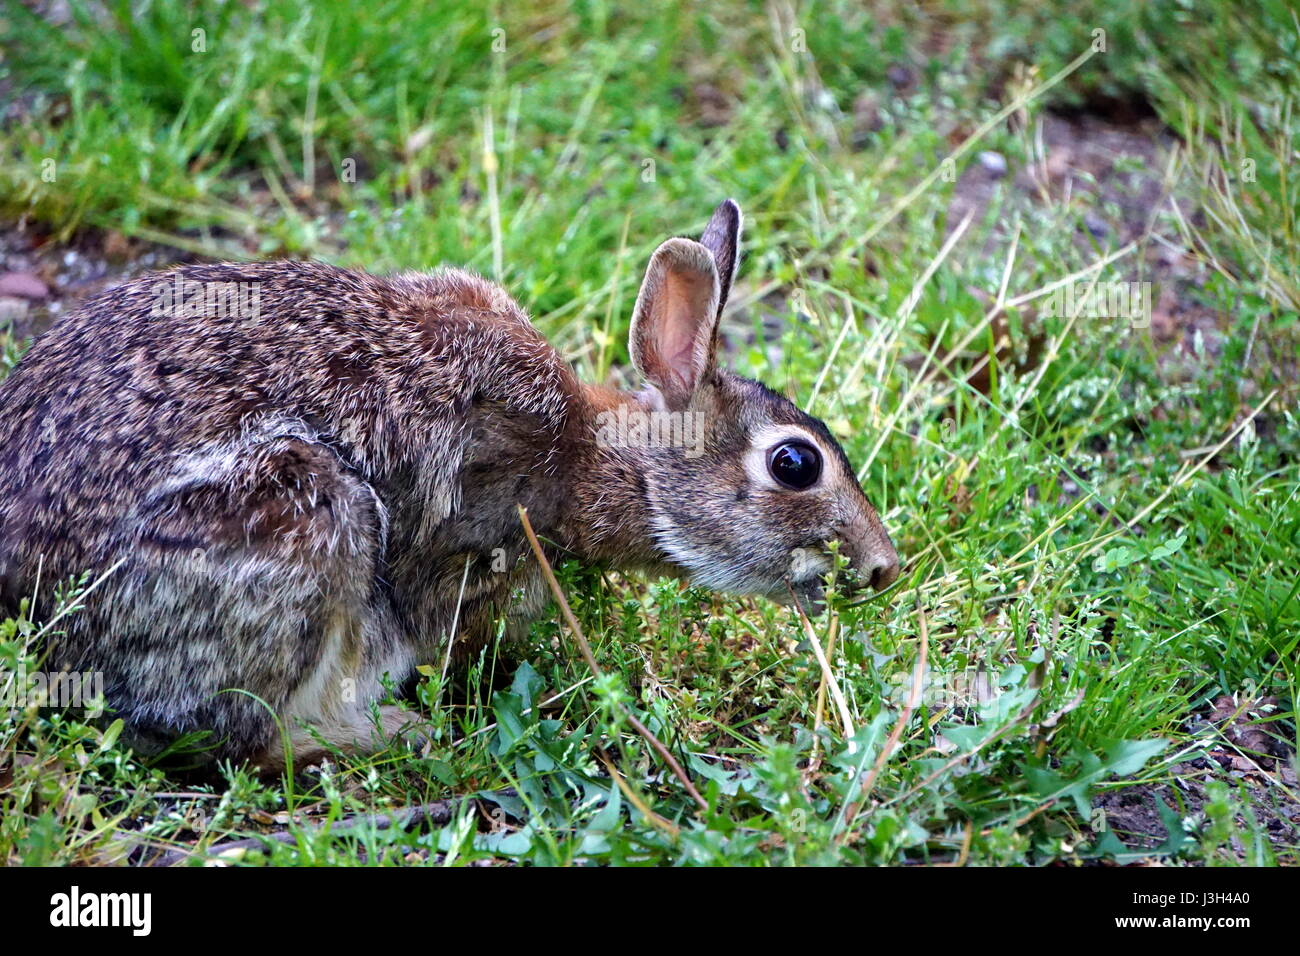 Wild Rabbits Eating Garden Stock Photos & Wild Rabbits Eating Garden